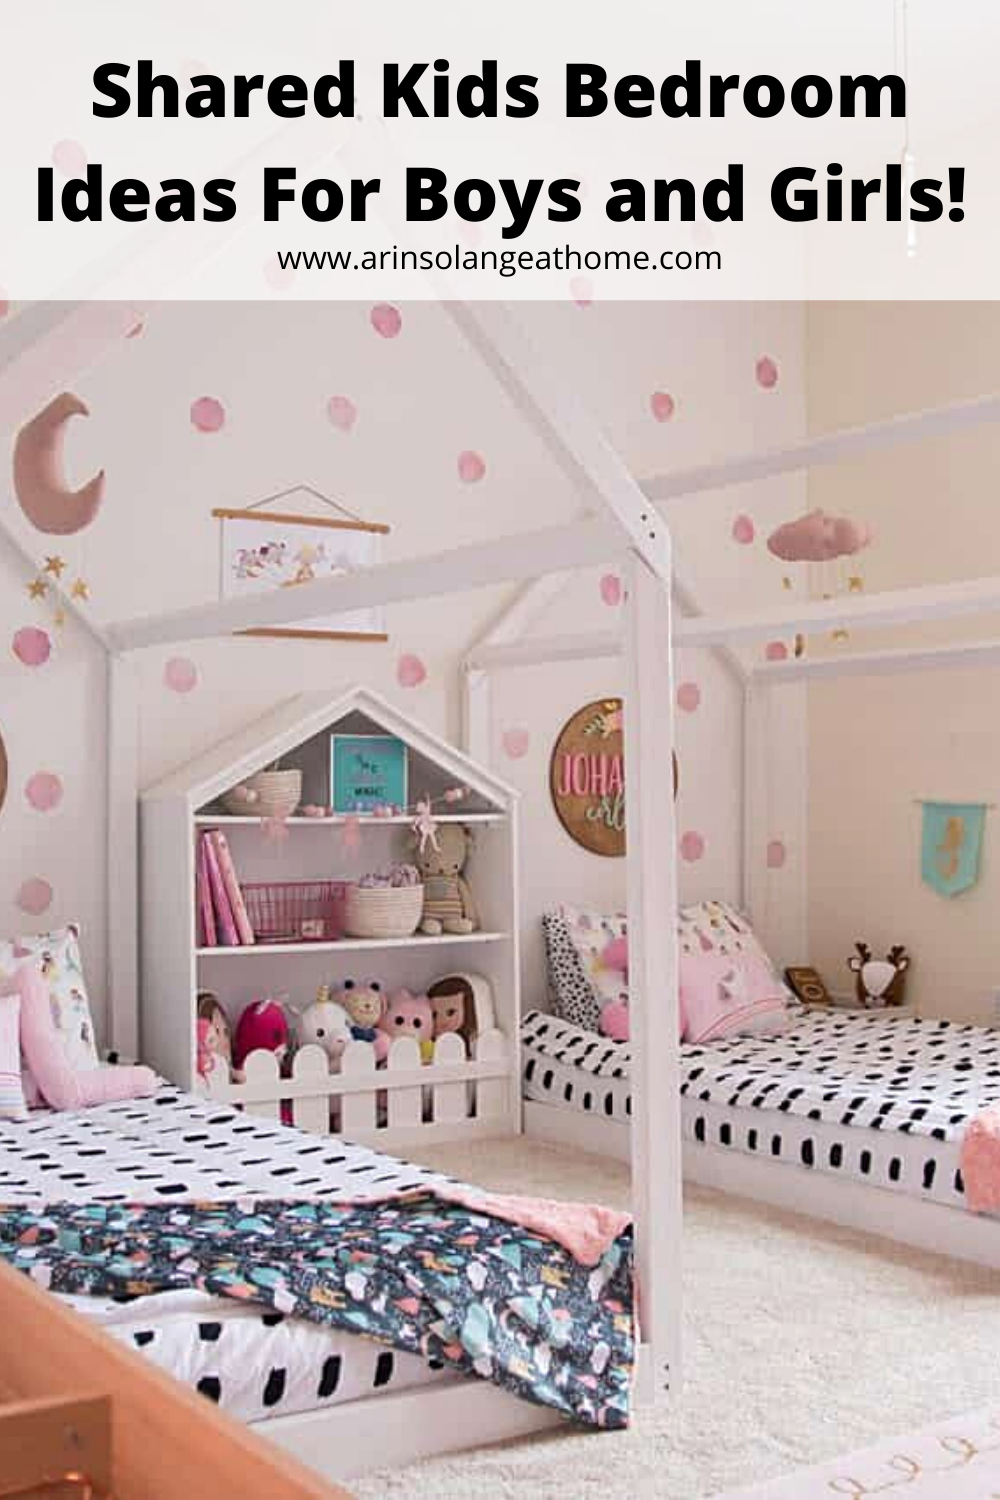 Here are several bedroom ideas for shared kids rooms - great for both boys and girls! Plus tips for making a shared sibling room work for the kids and family. Decor and tips for sisters and brothers.